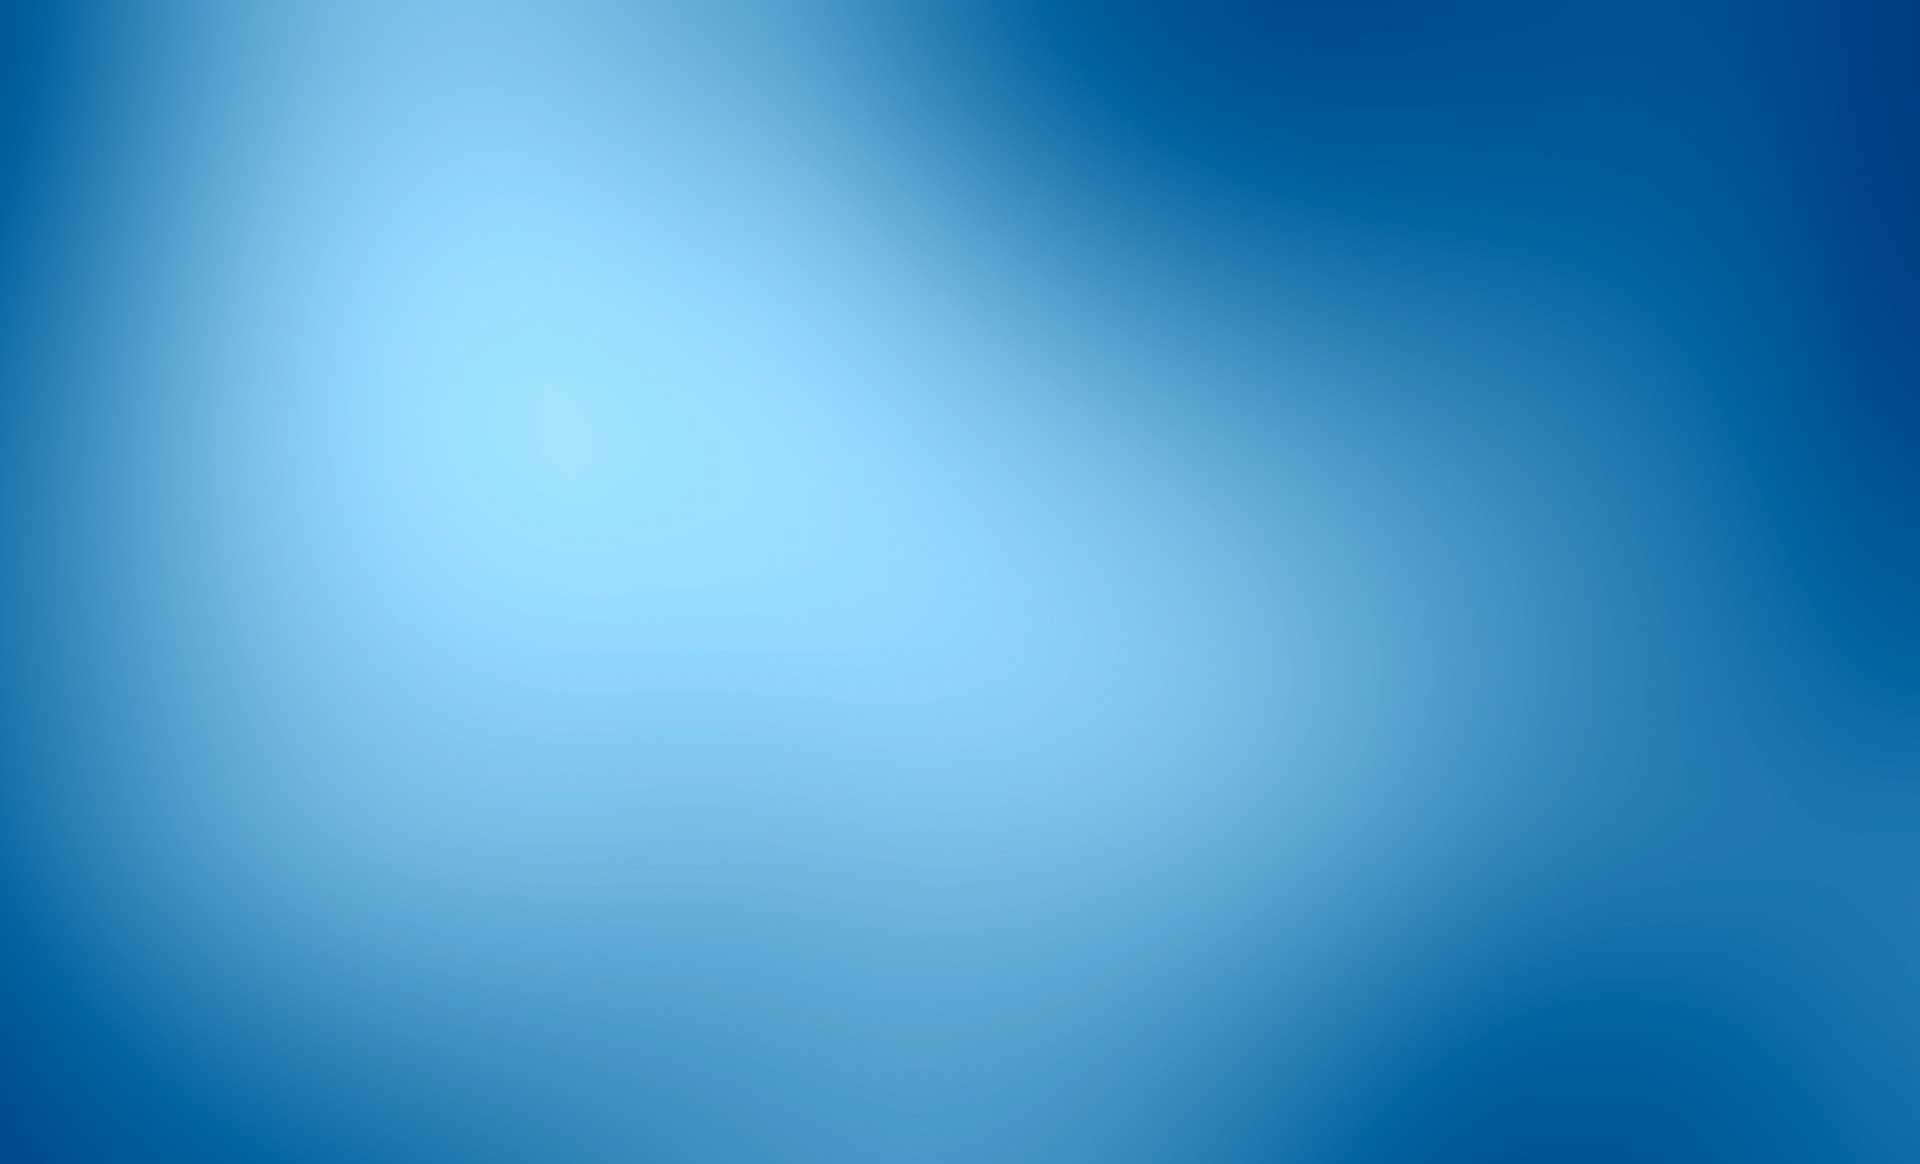 Simple Blue Background Wallpaper High Resolution Images 1920x1164